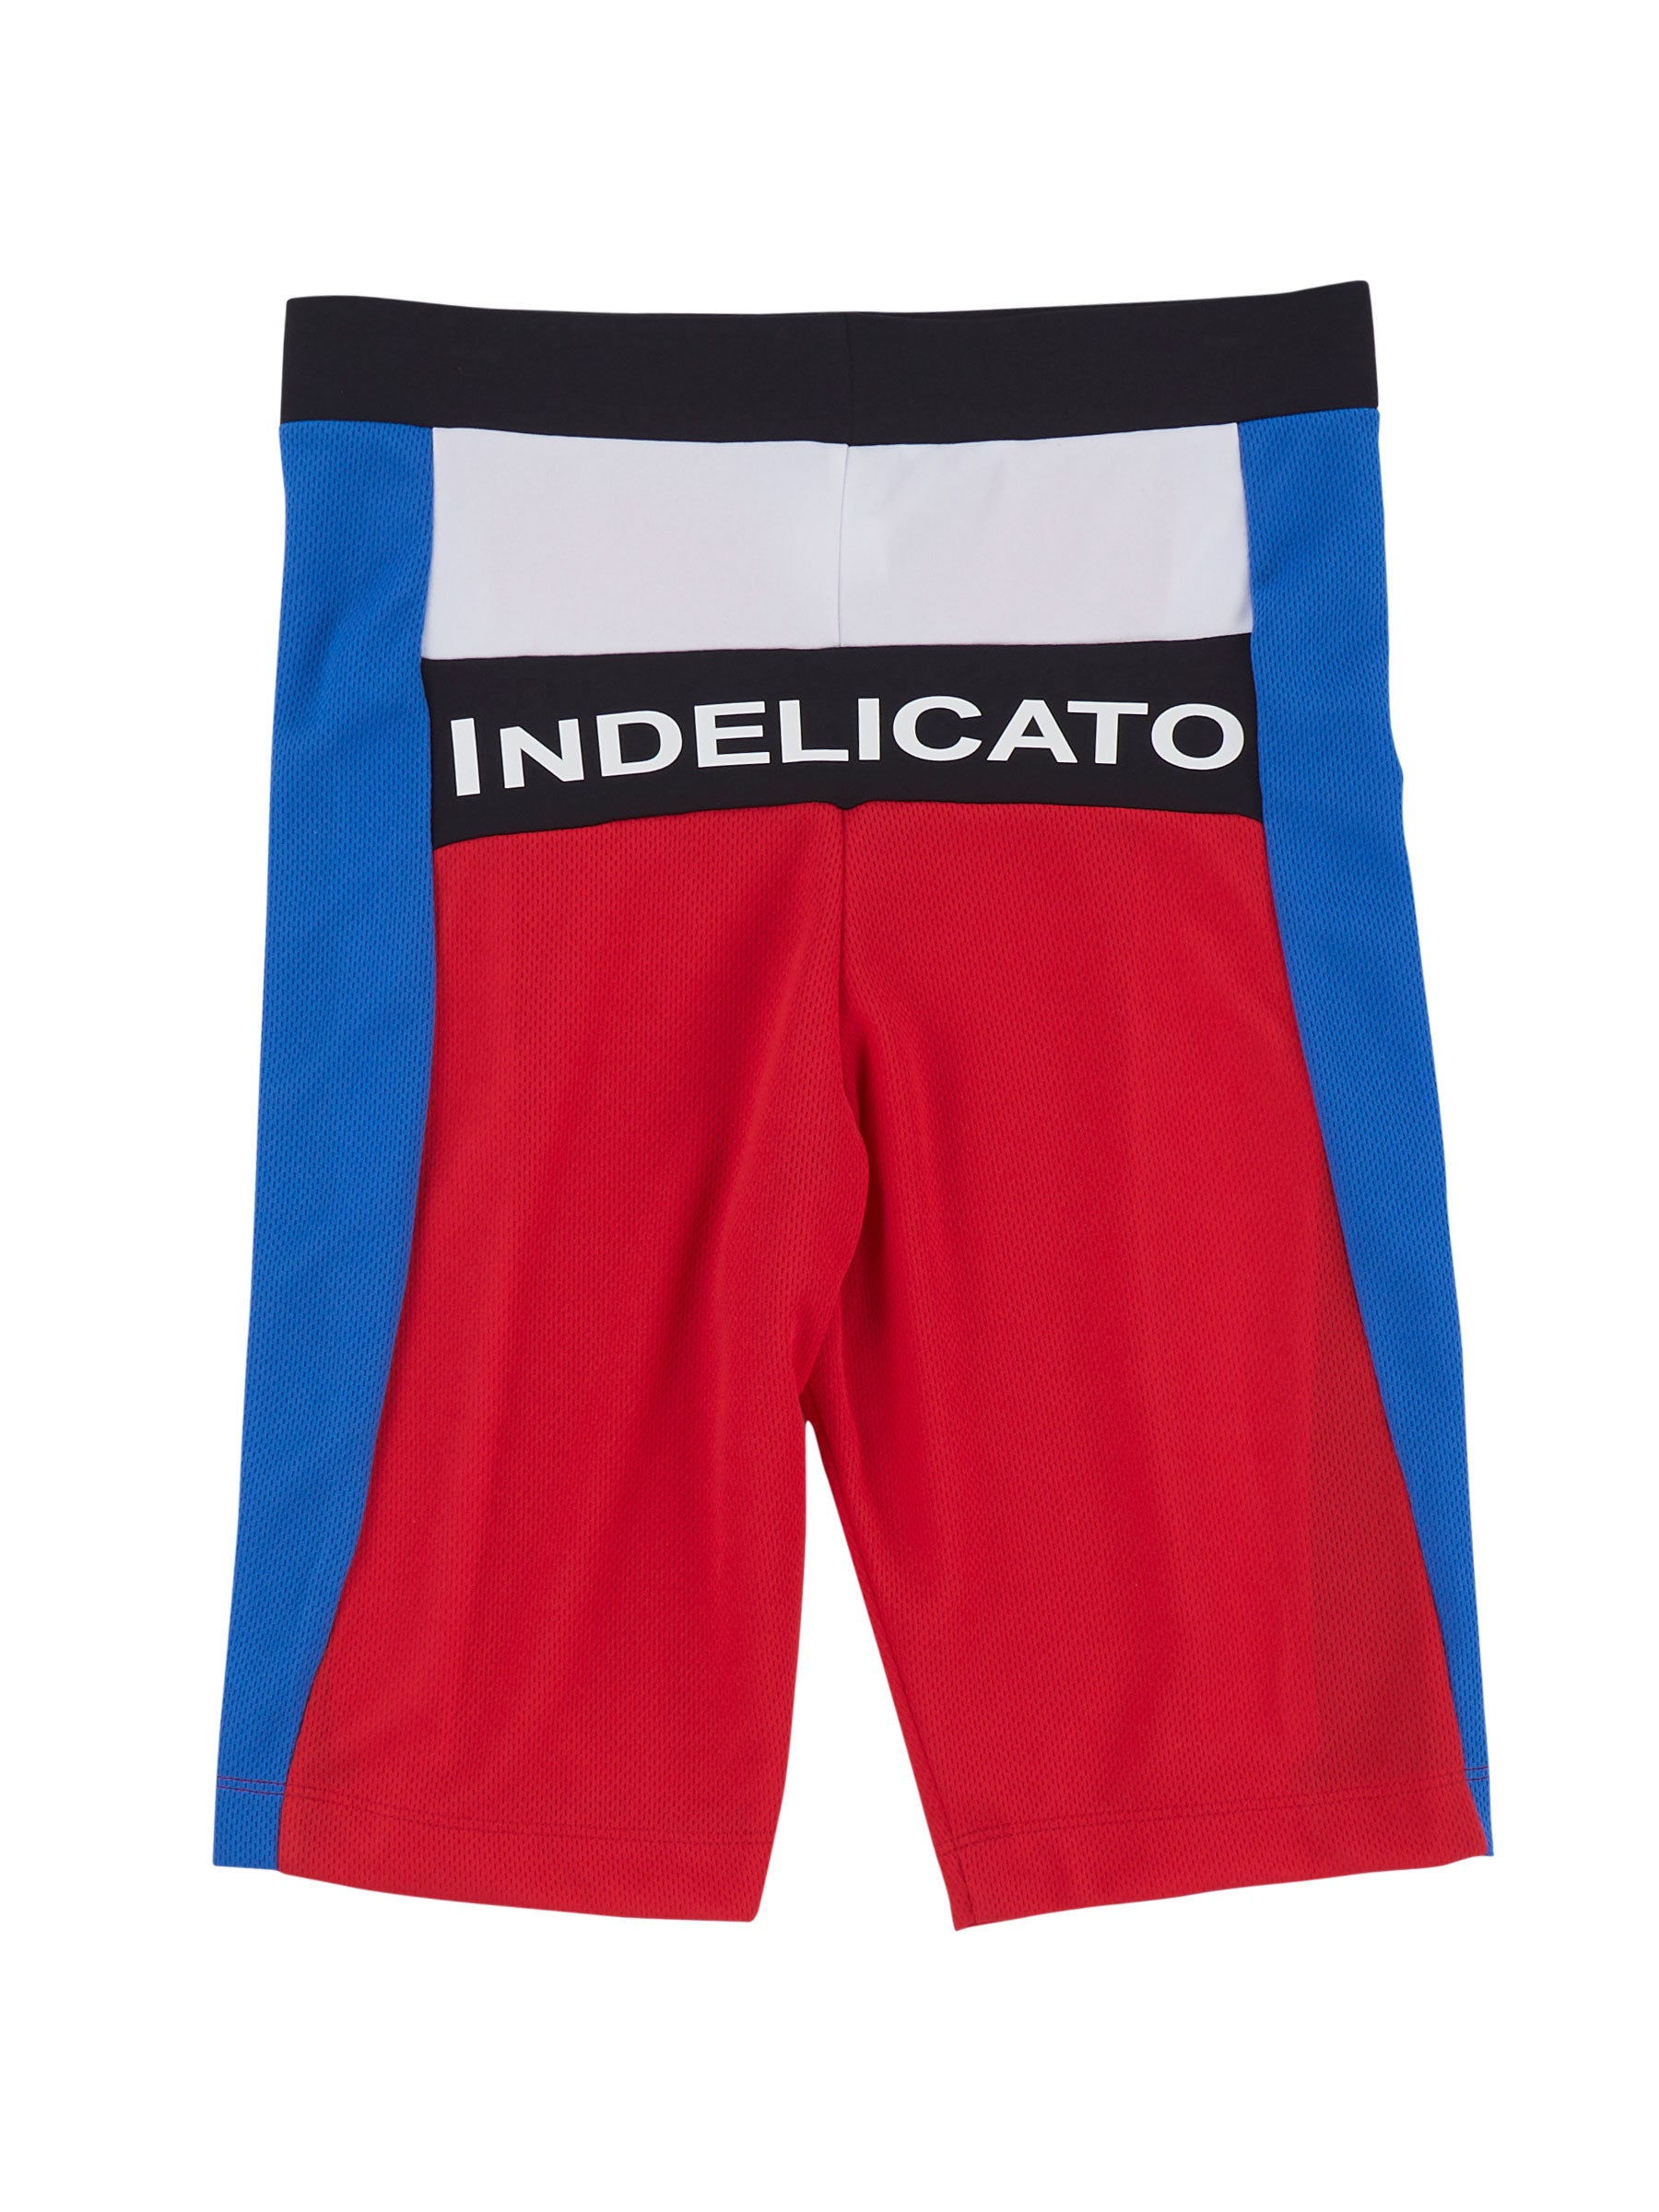 odd92 Nicola Indelicato Cycling Shorts Fall/Winter 2019 Menswear - 3